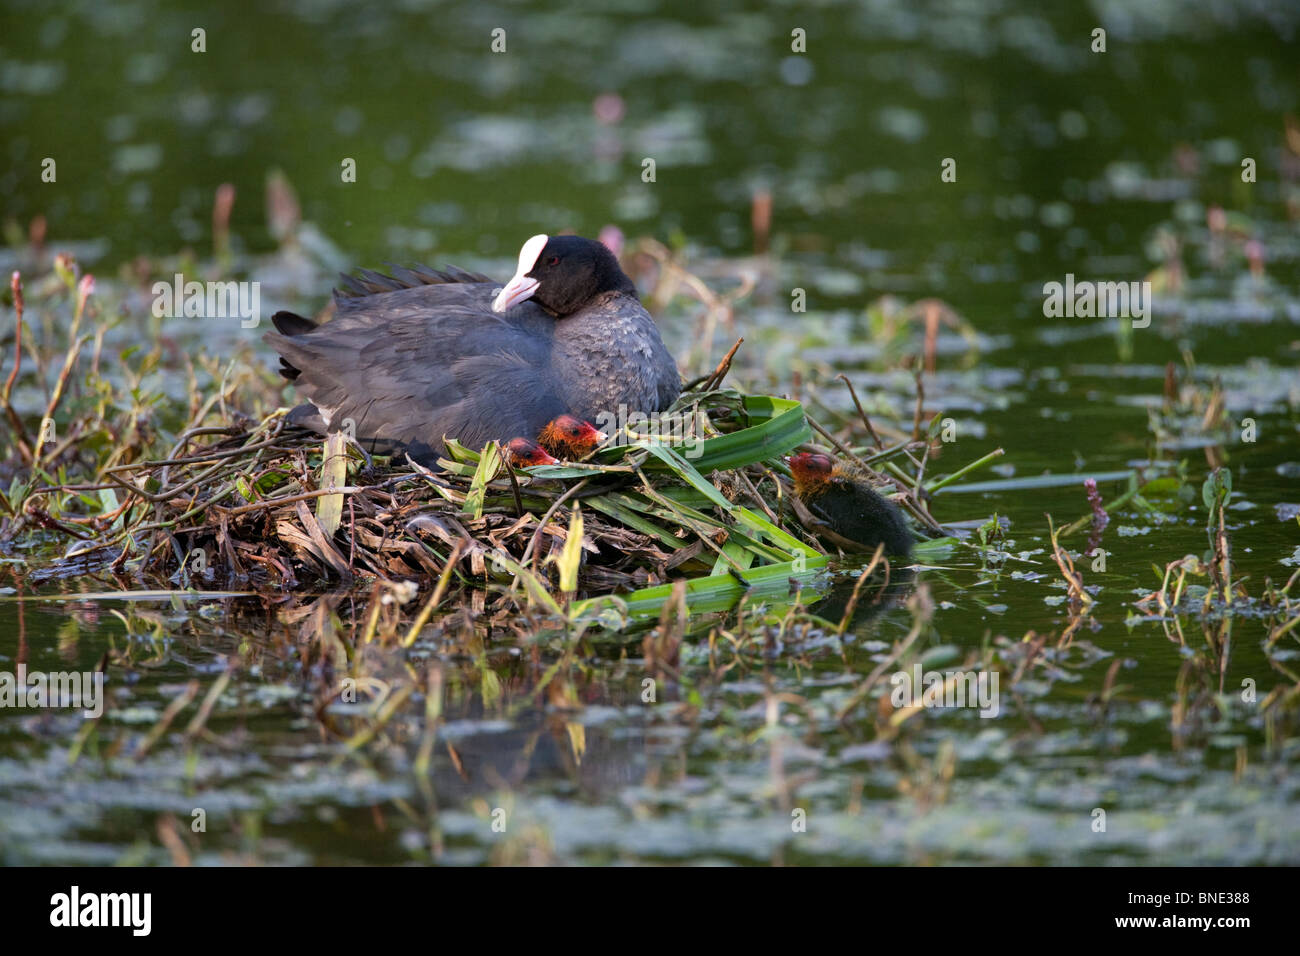 Coot and chicks on a nest. - Stock Image